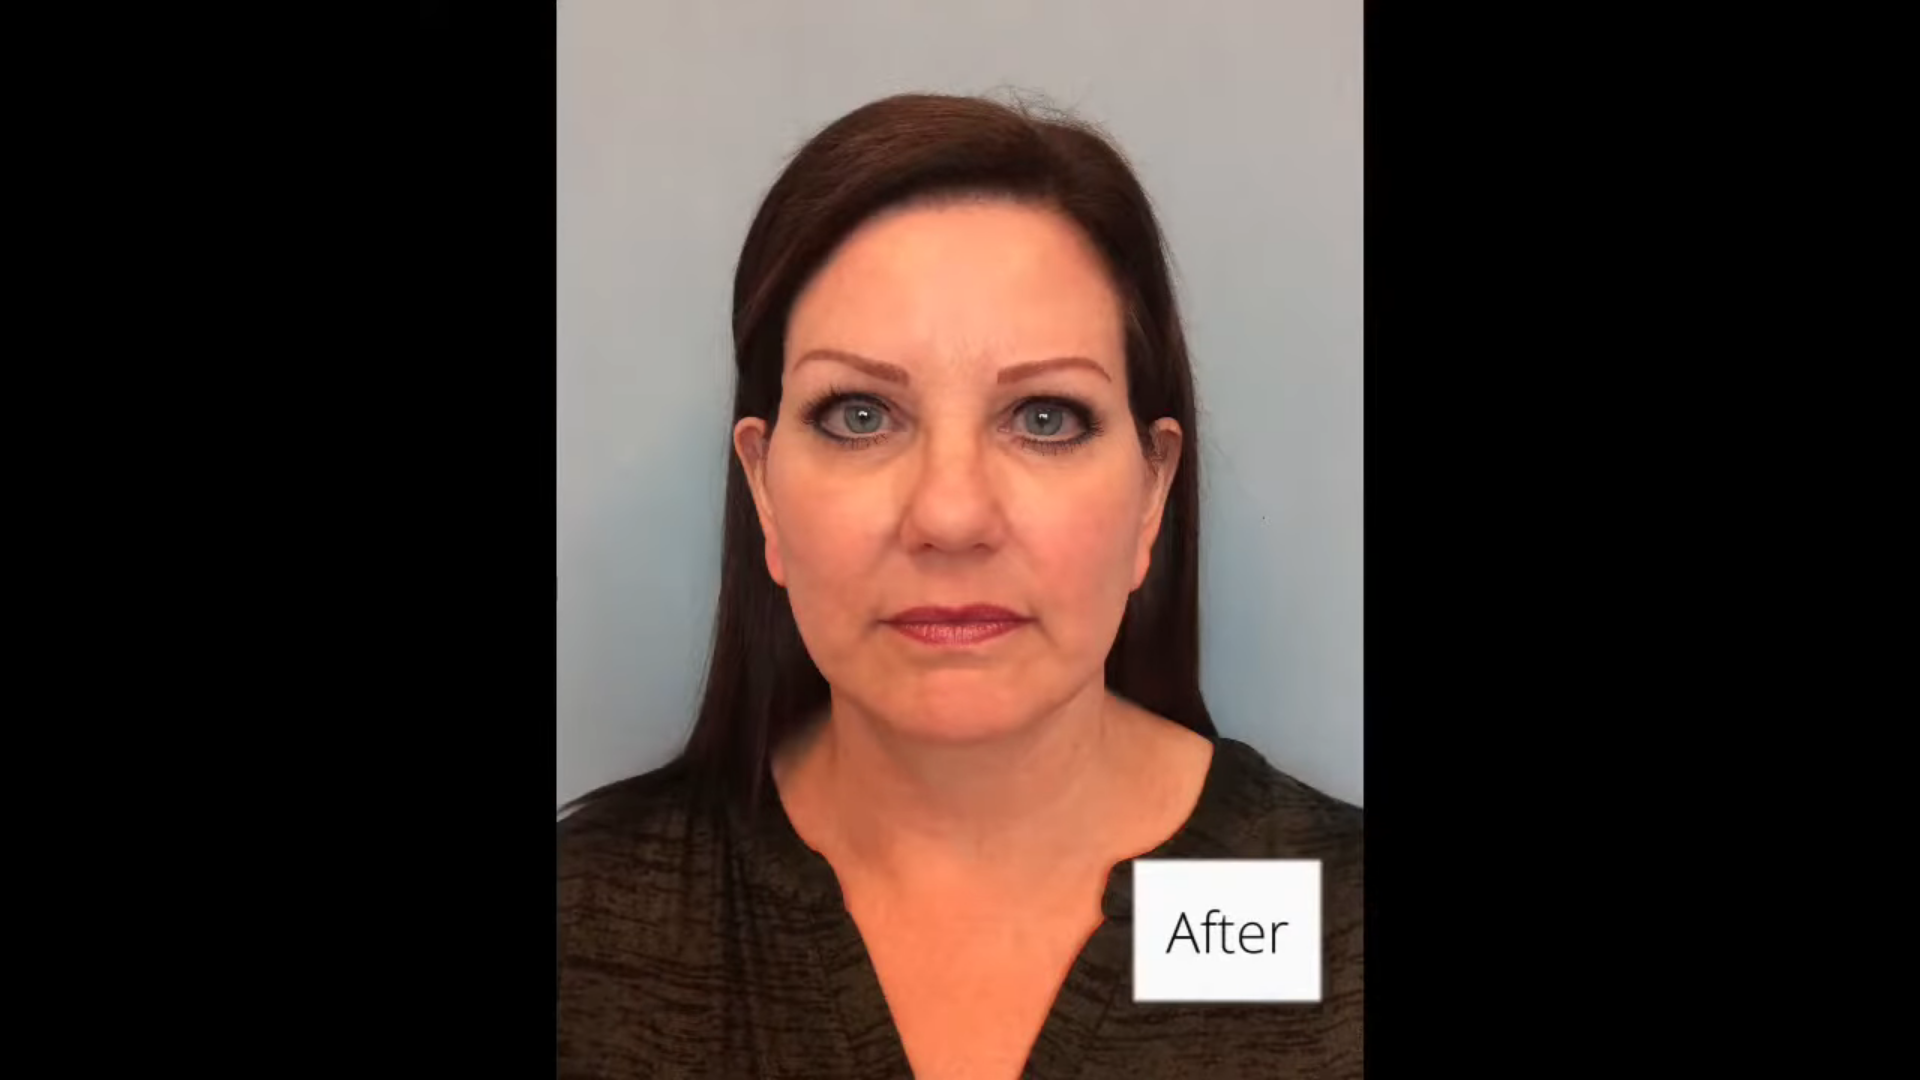 Facelift results with Dr. Admire in Phoenix and Scottsdale